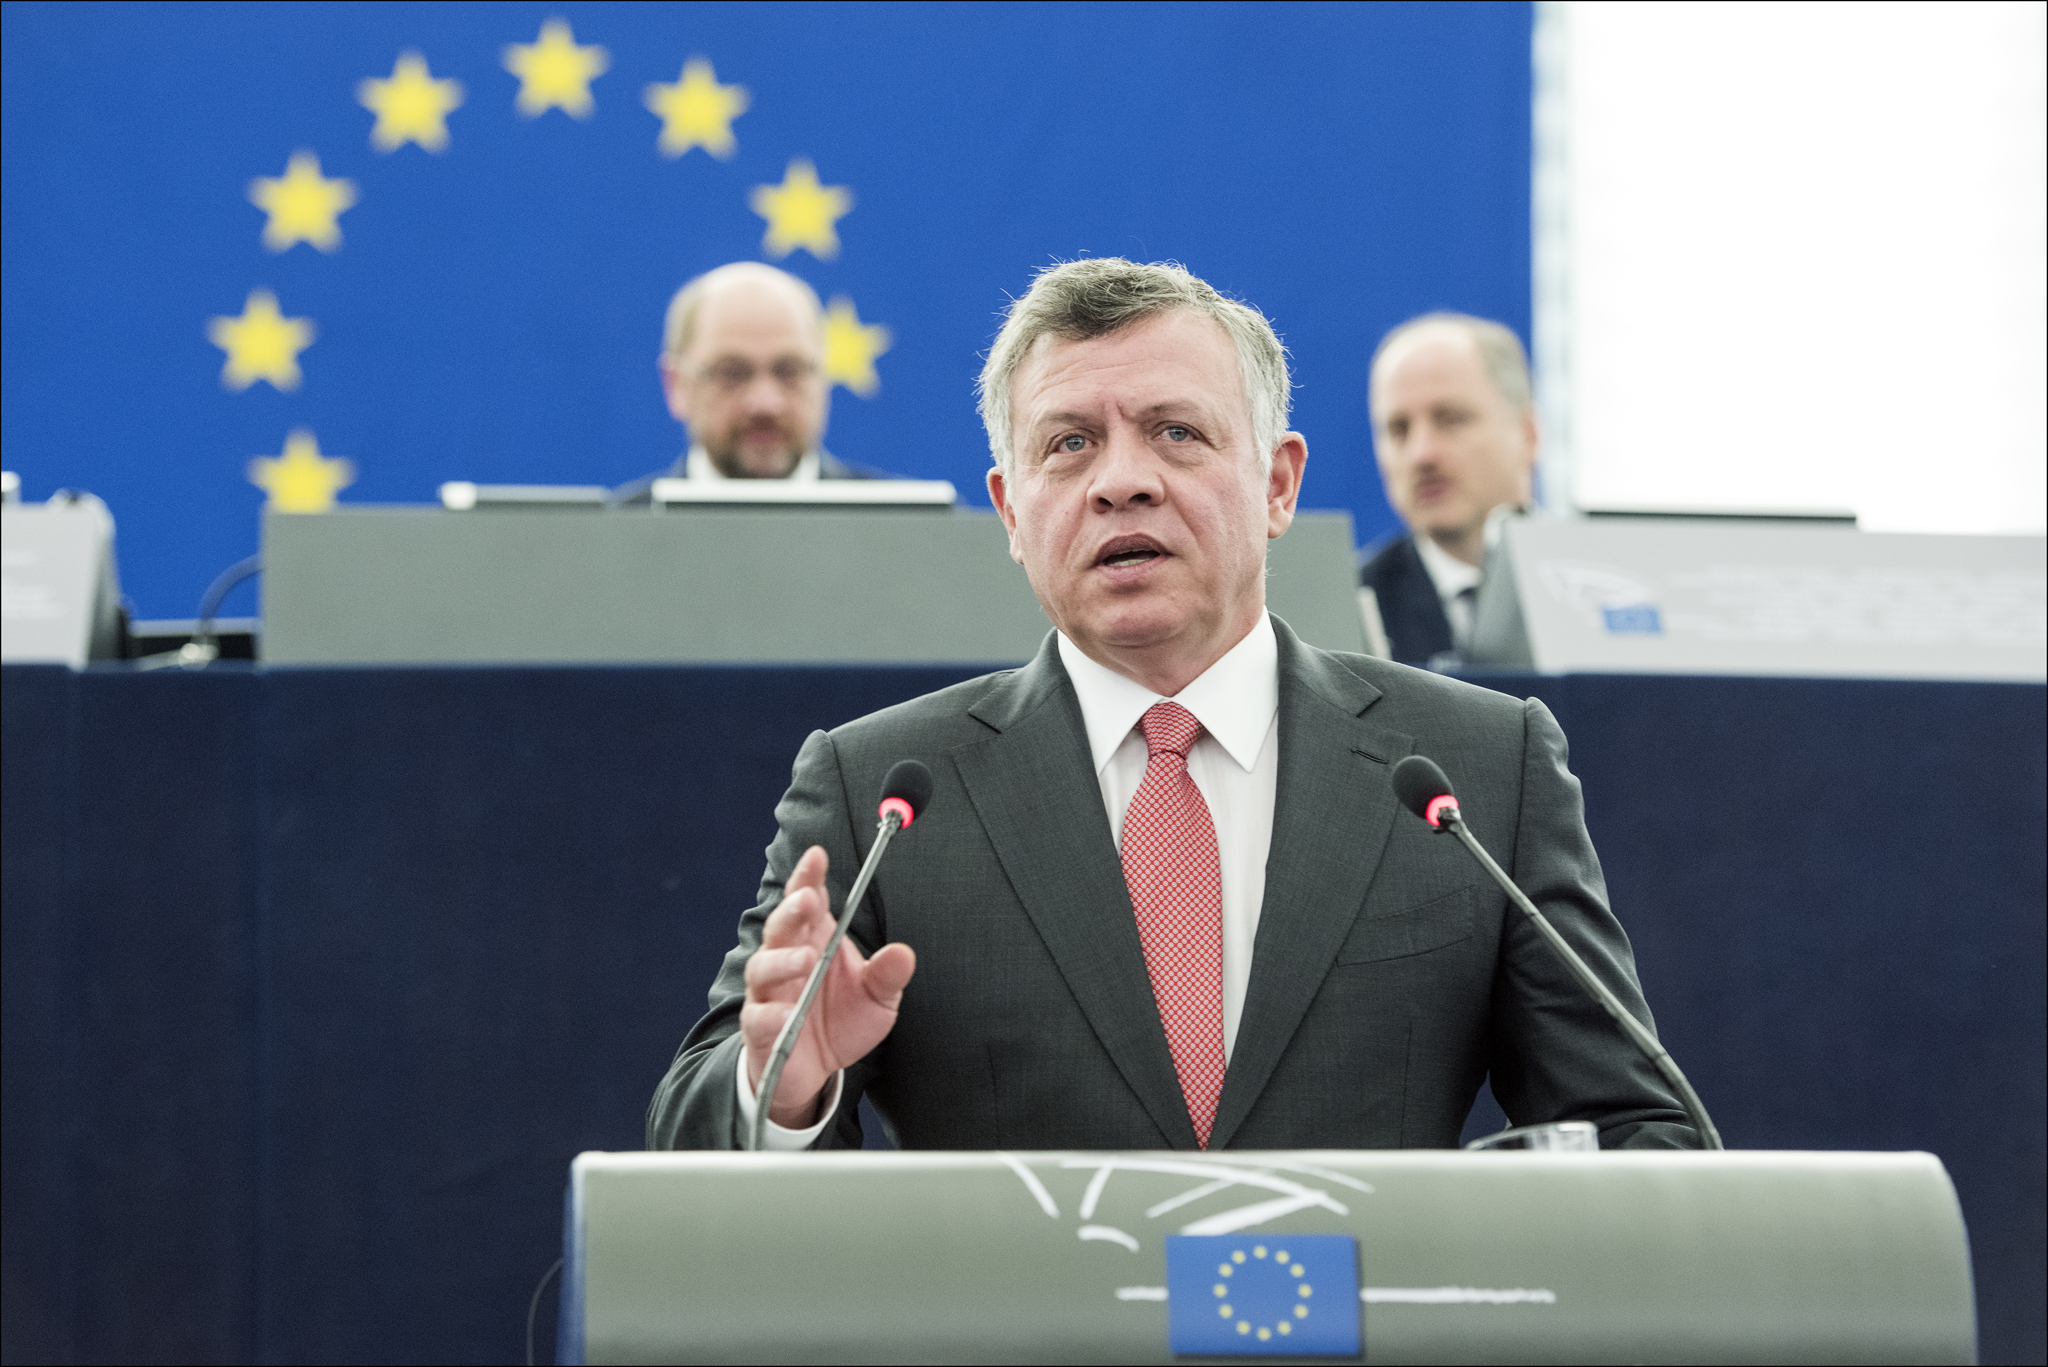 King Abdullah II of Jordan (photo credit: European Parliament/flickr)